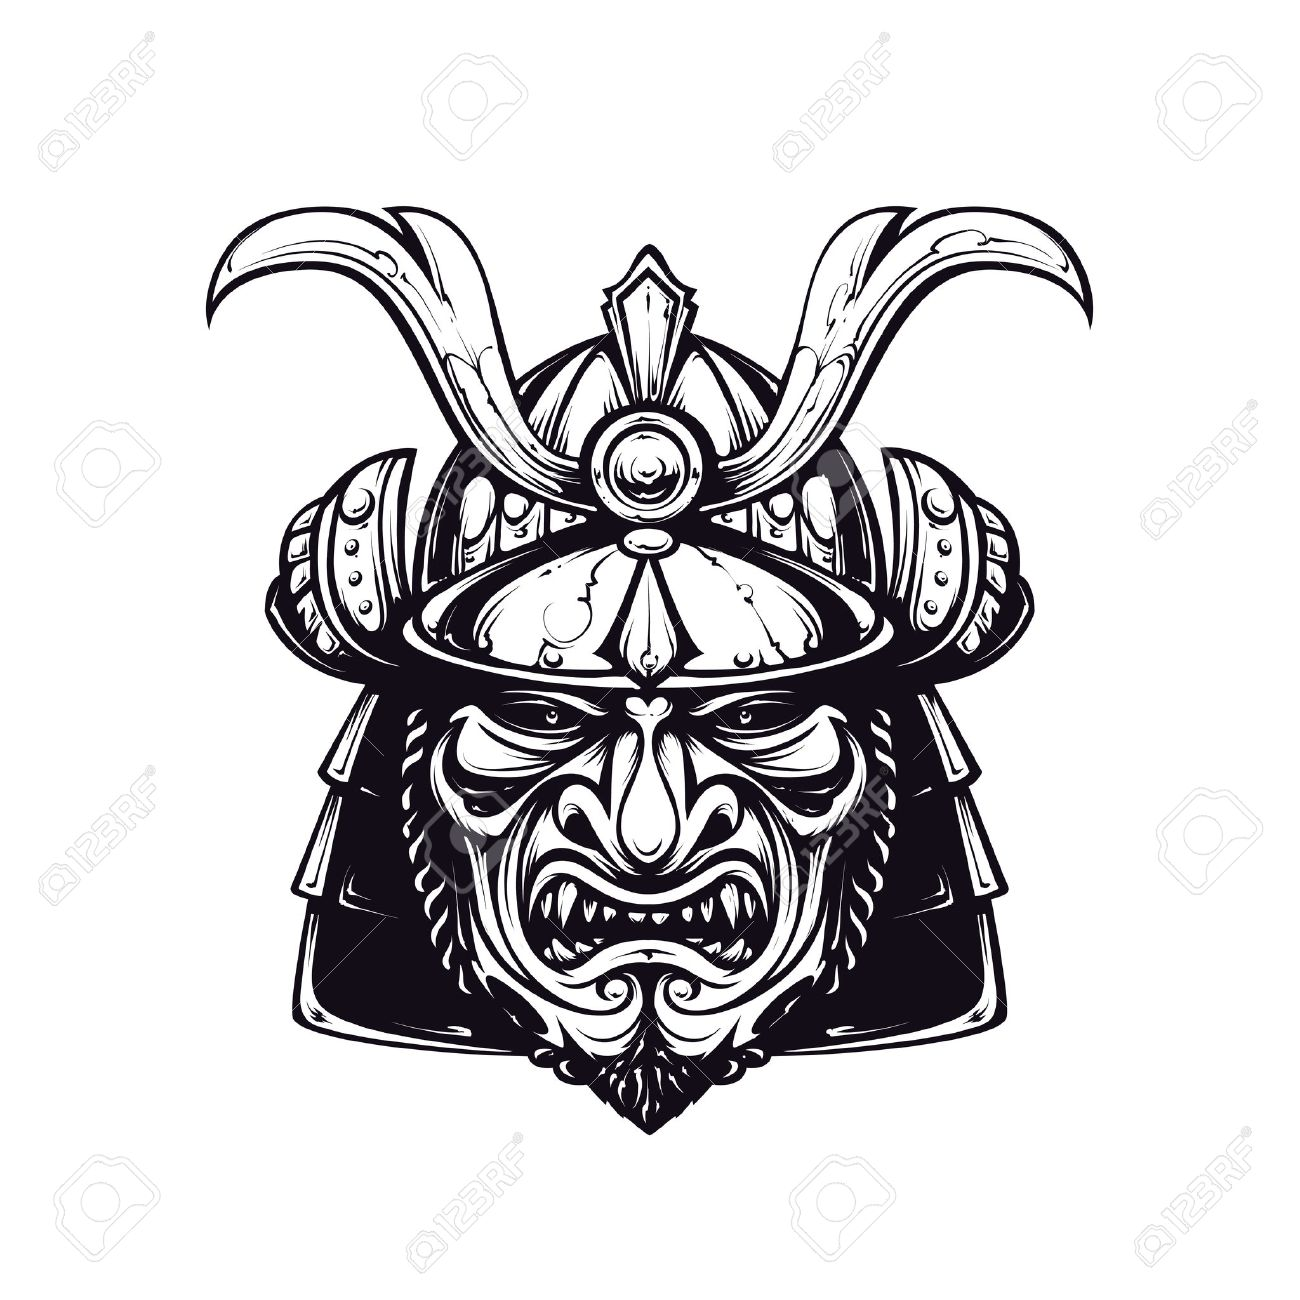 Samurai Mask Clip Art Black And White Version Isolated On White Royalty Free Cliparts Vectors And Stock Illustration Image 24595249